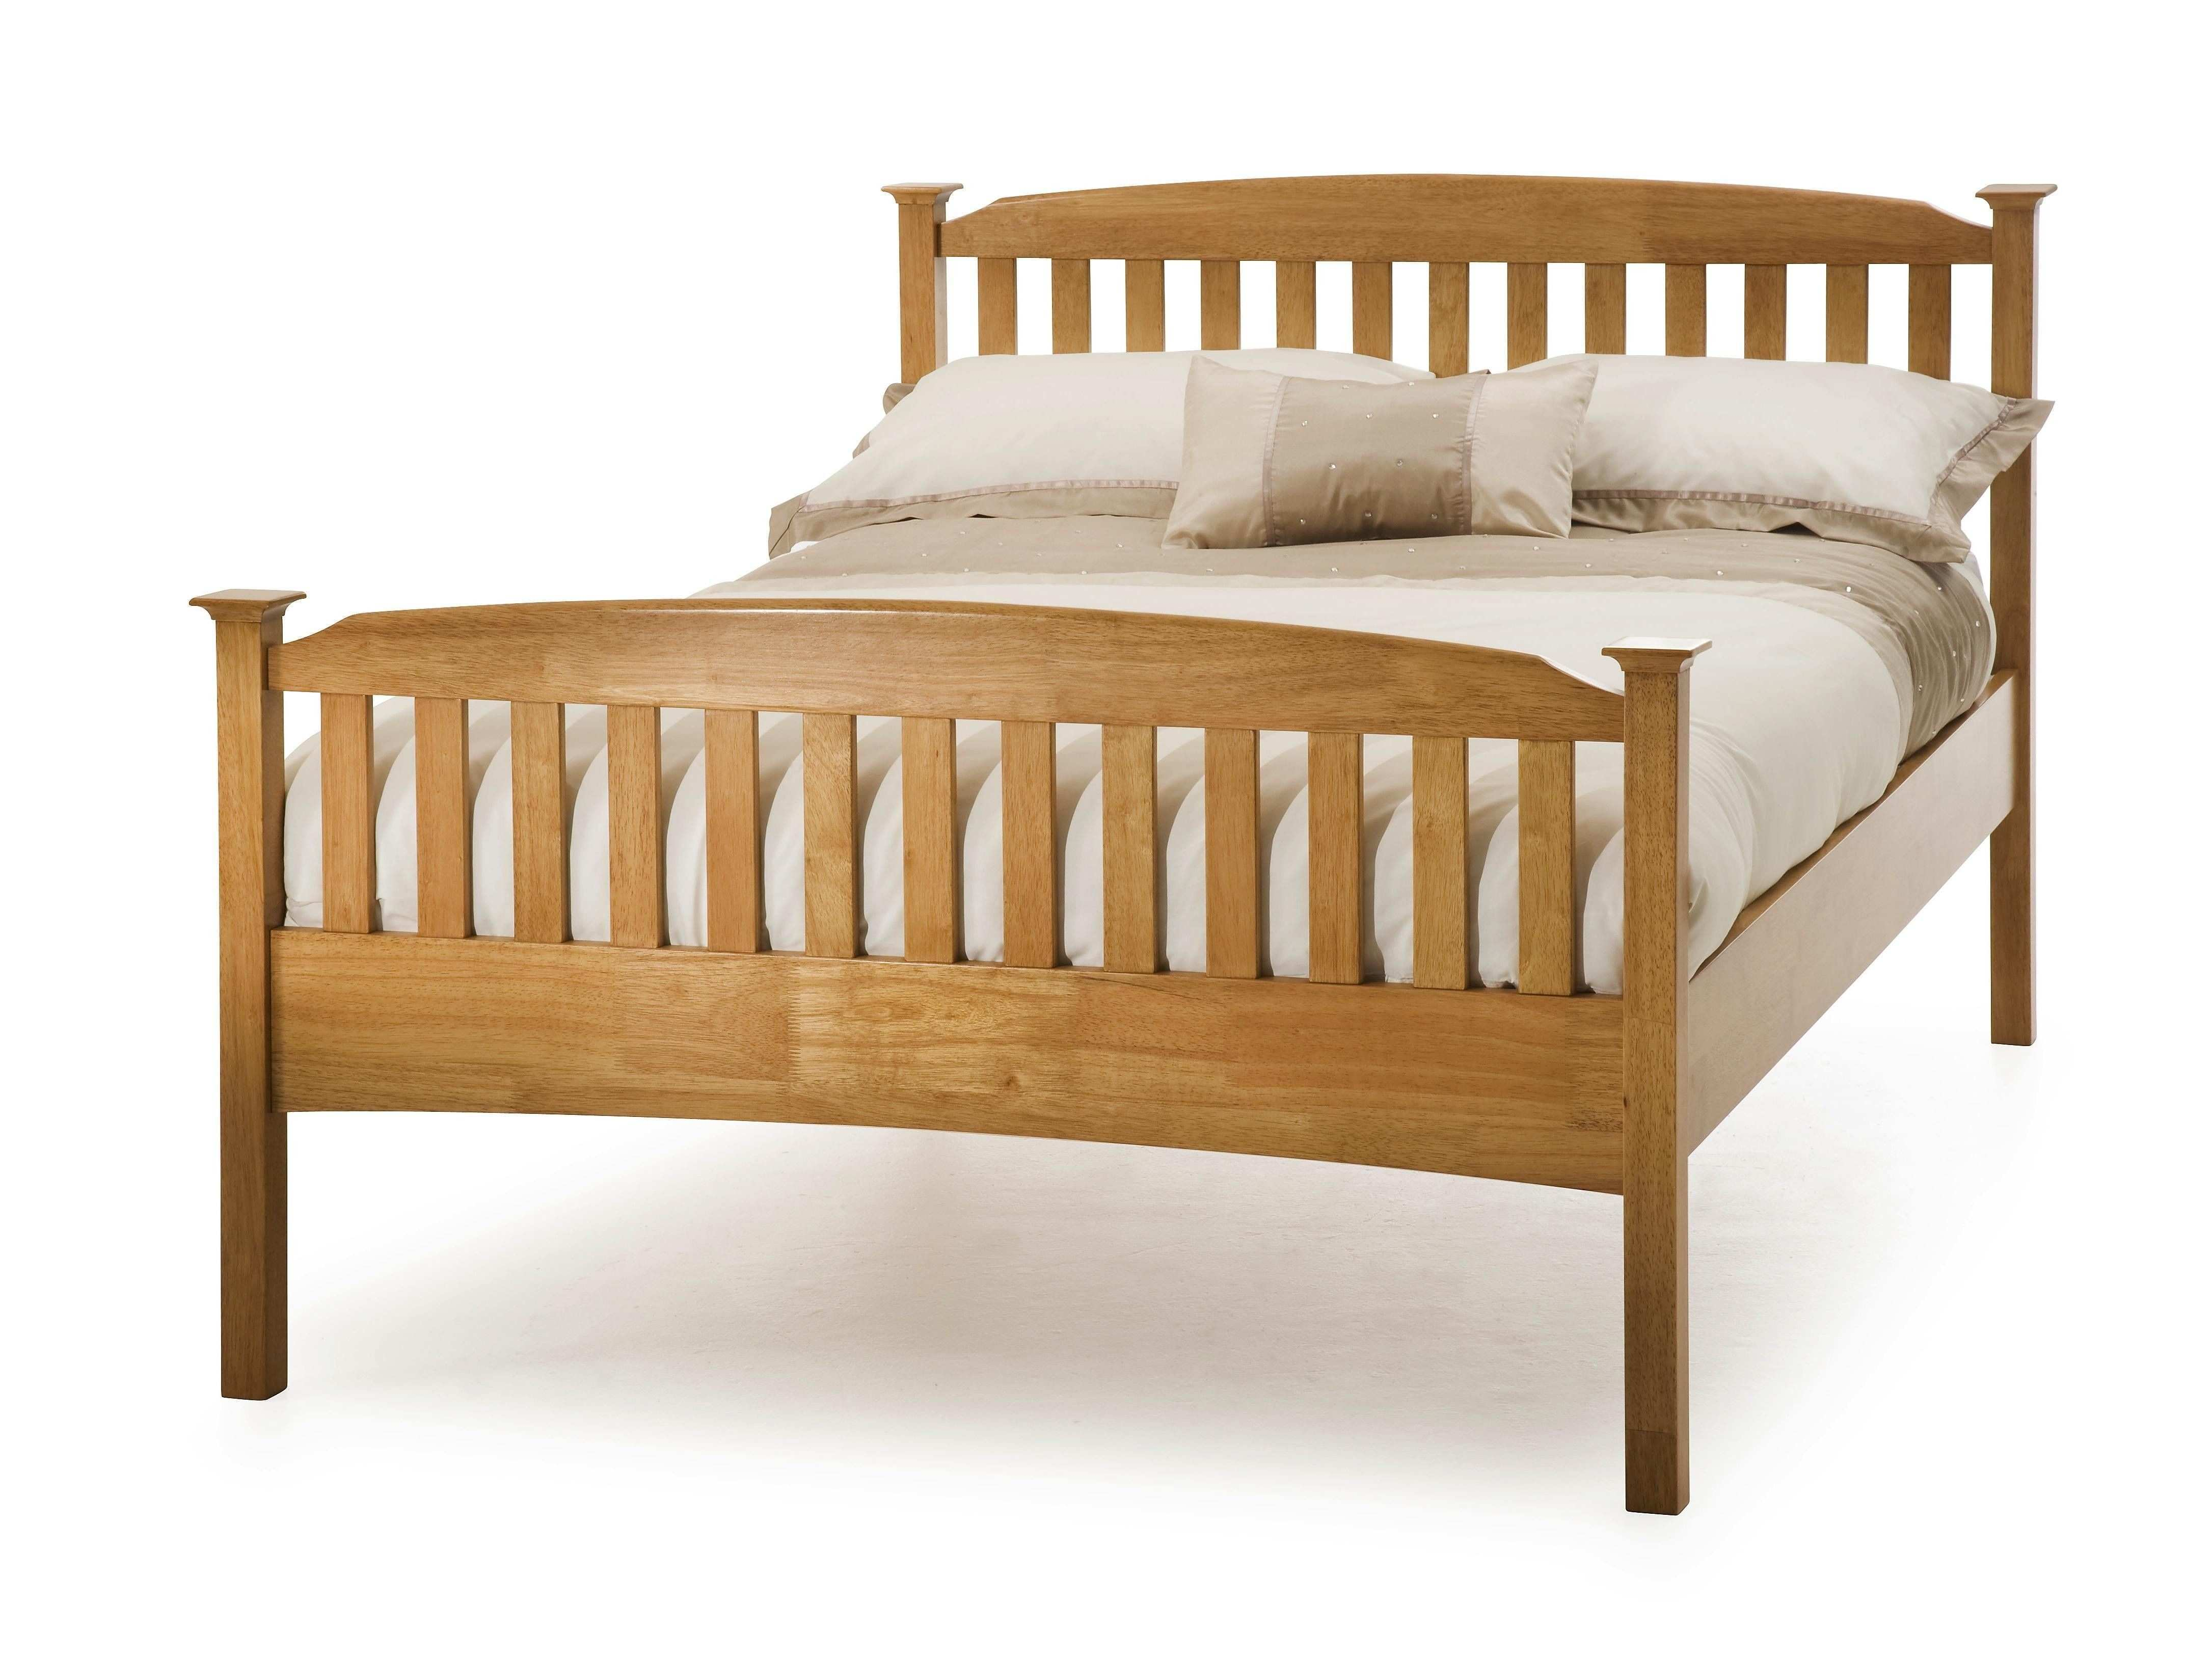 Image result for oak beds king size Beds Pinterest